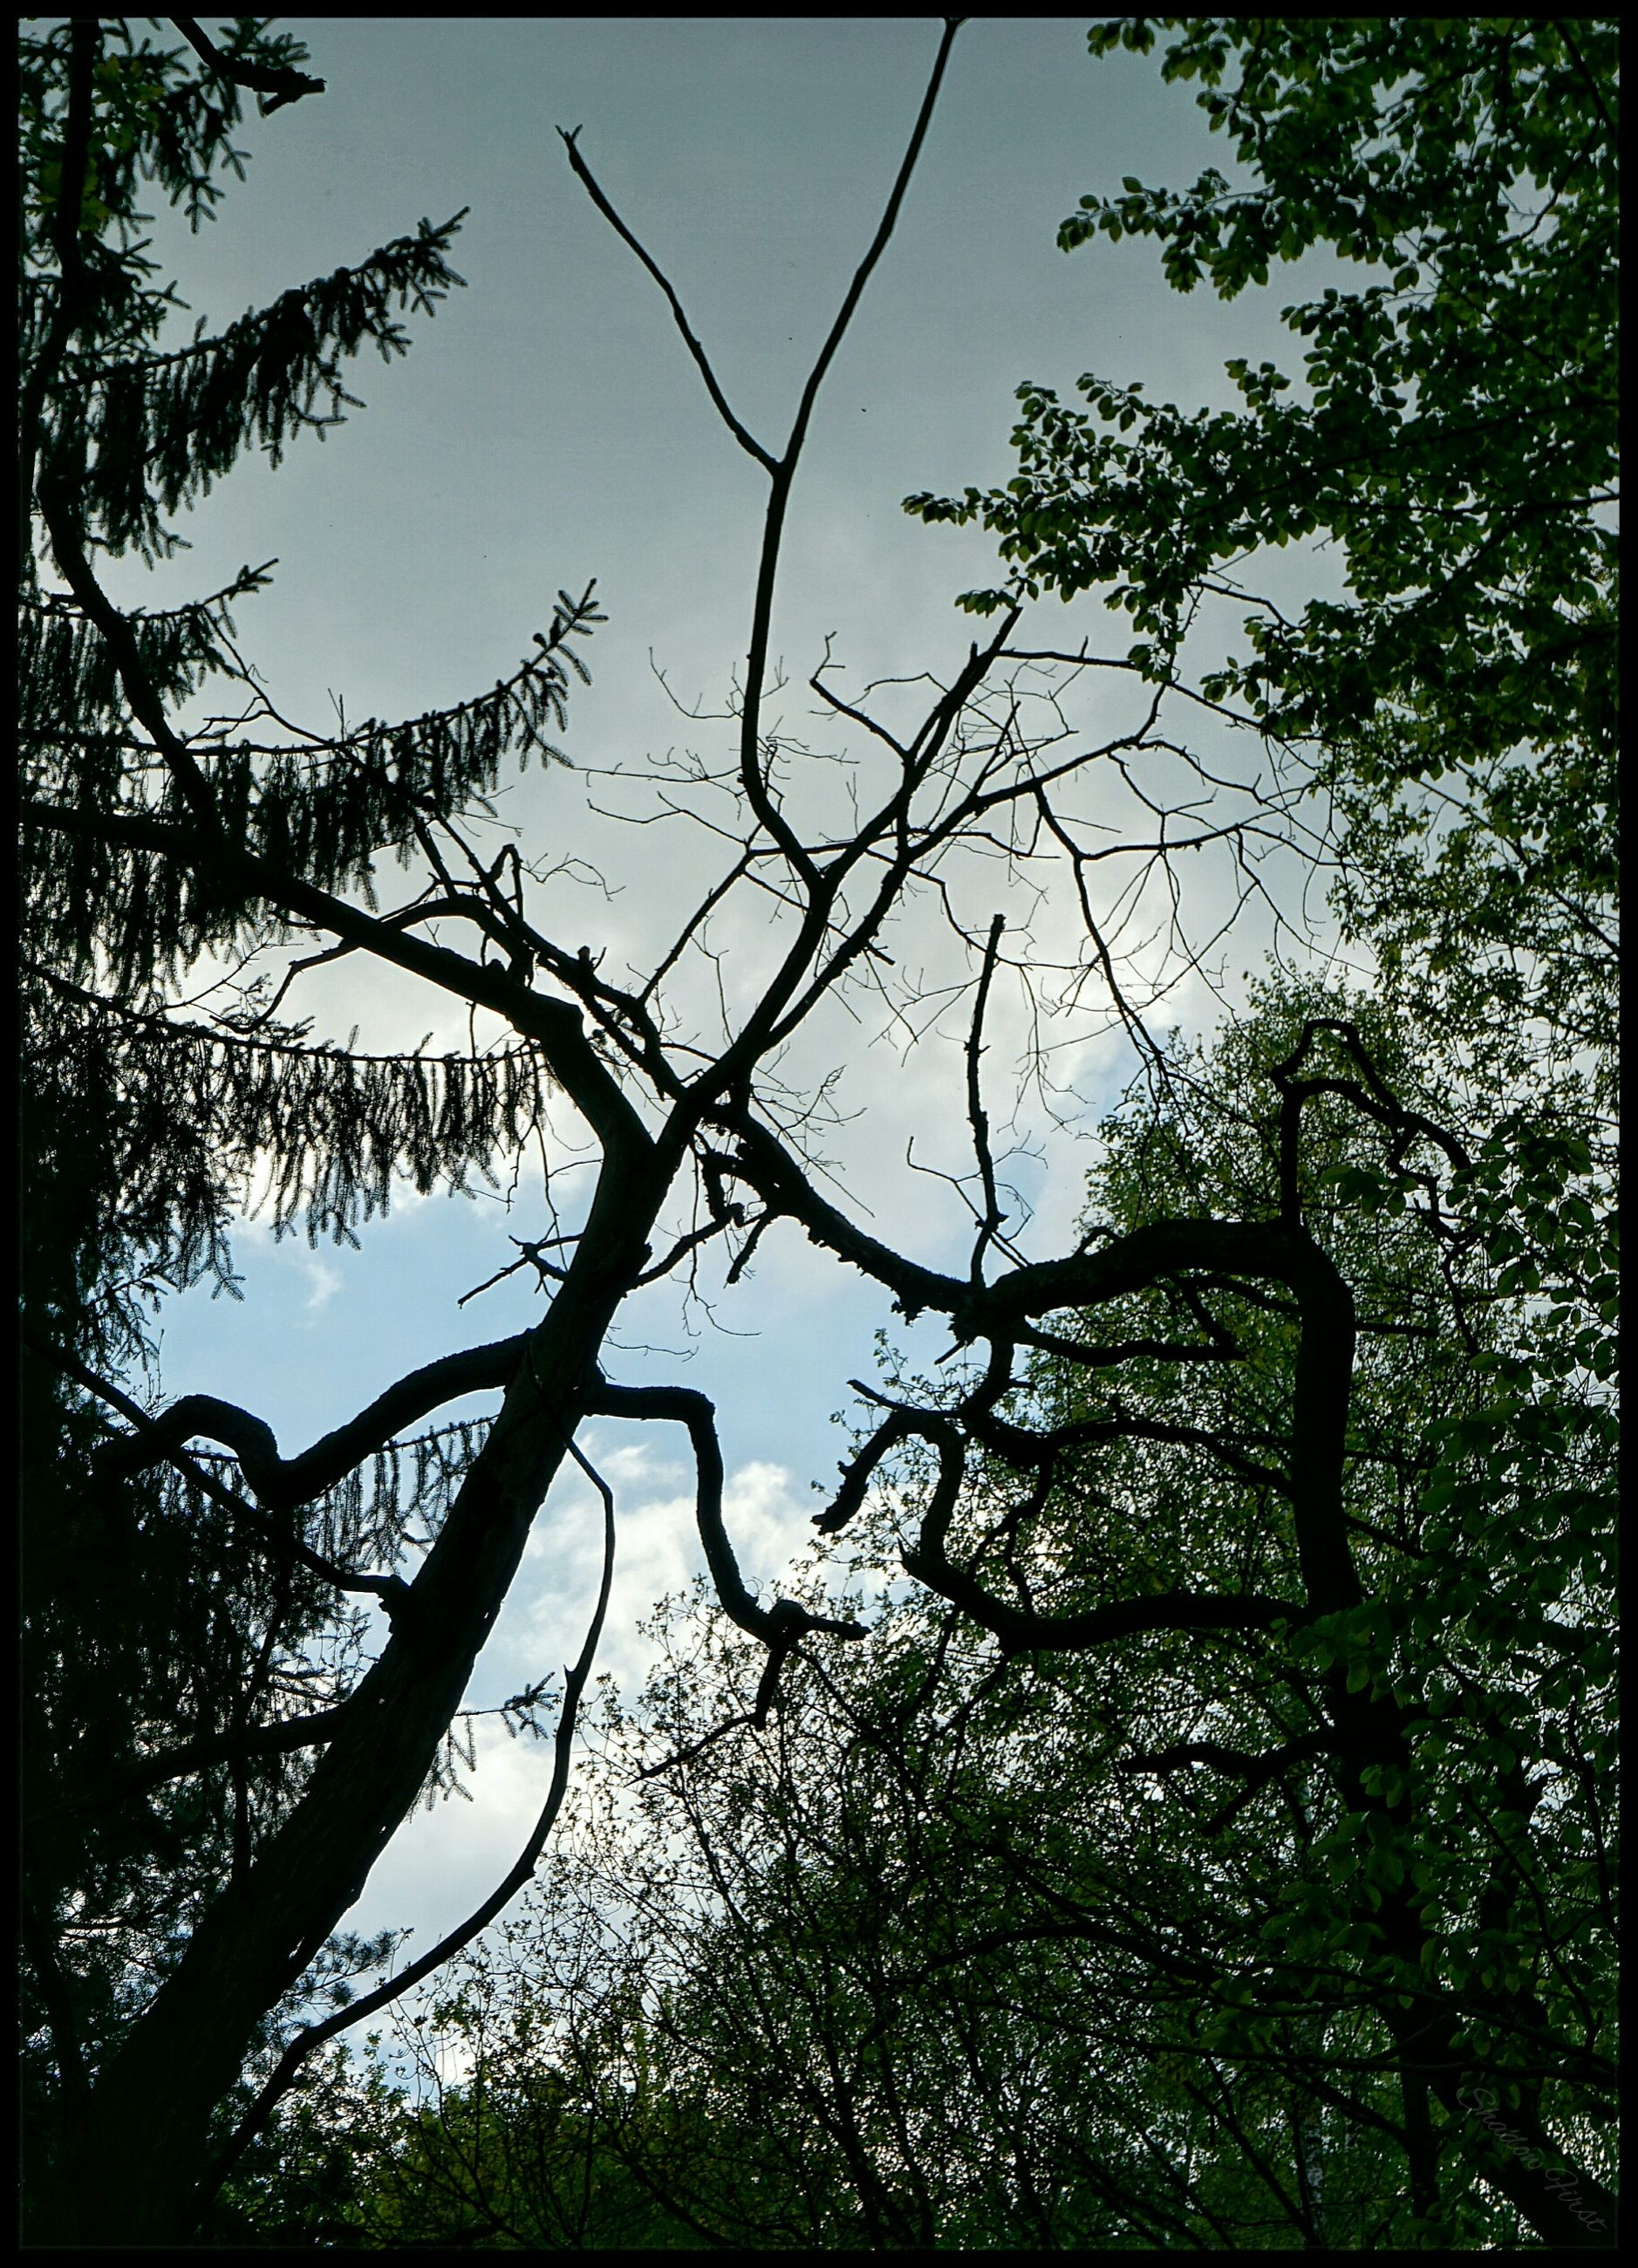 tree, branch, low angle view, growth, clear sky, nature, tranquility, beauty in nature, sky, scenics, outdoors, no people, day, tree trunk, leaf, tranquil scene, green color, sunlight, silhouette, high section